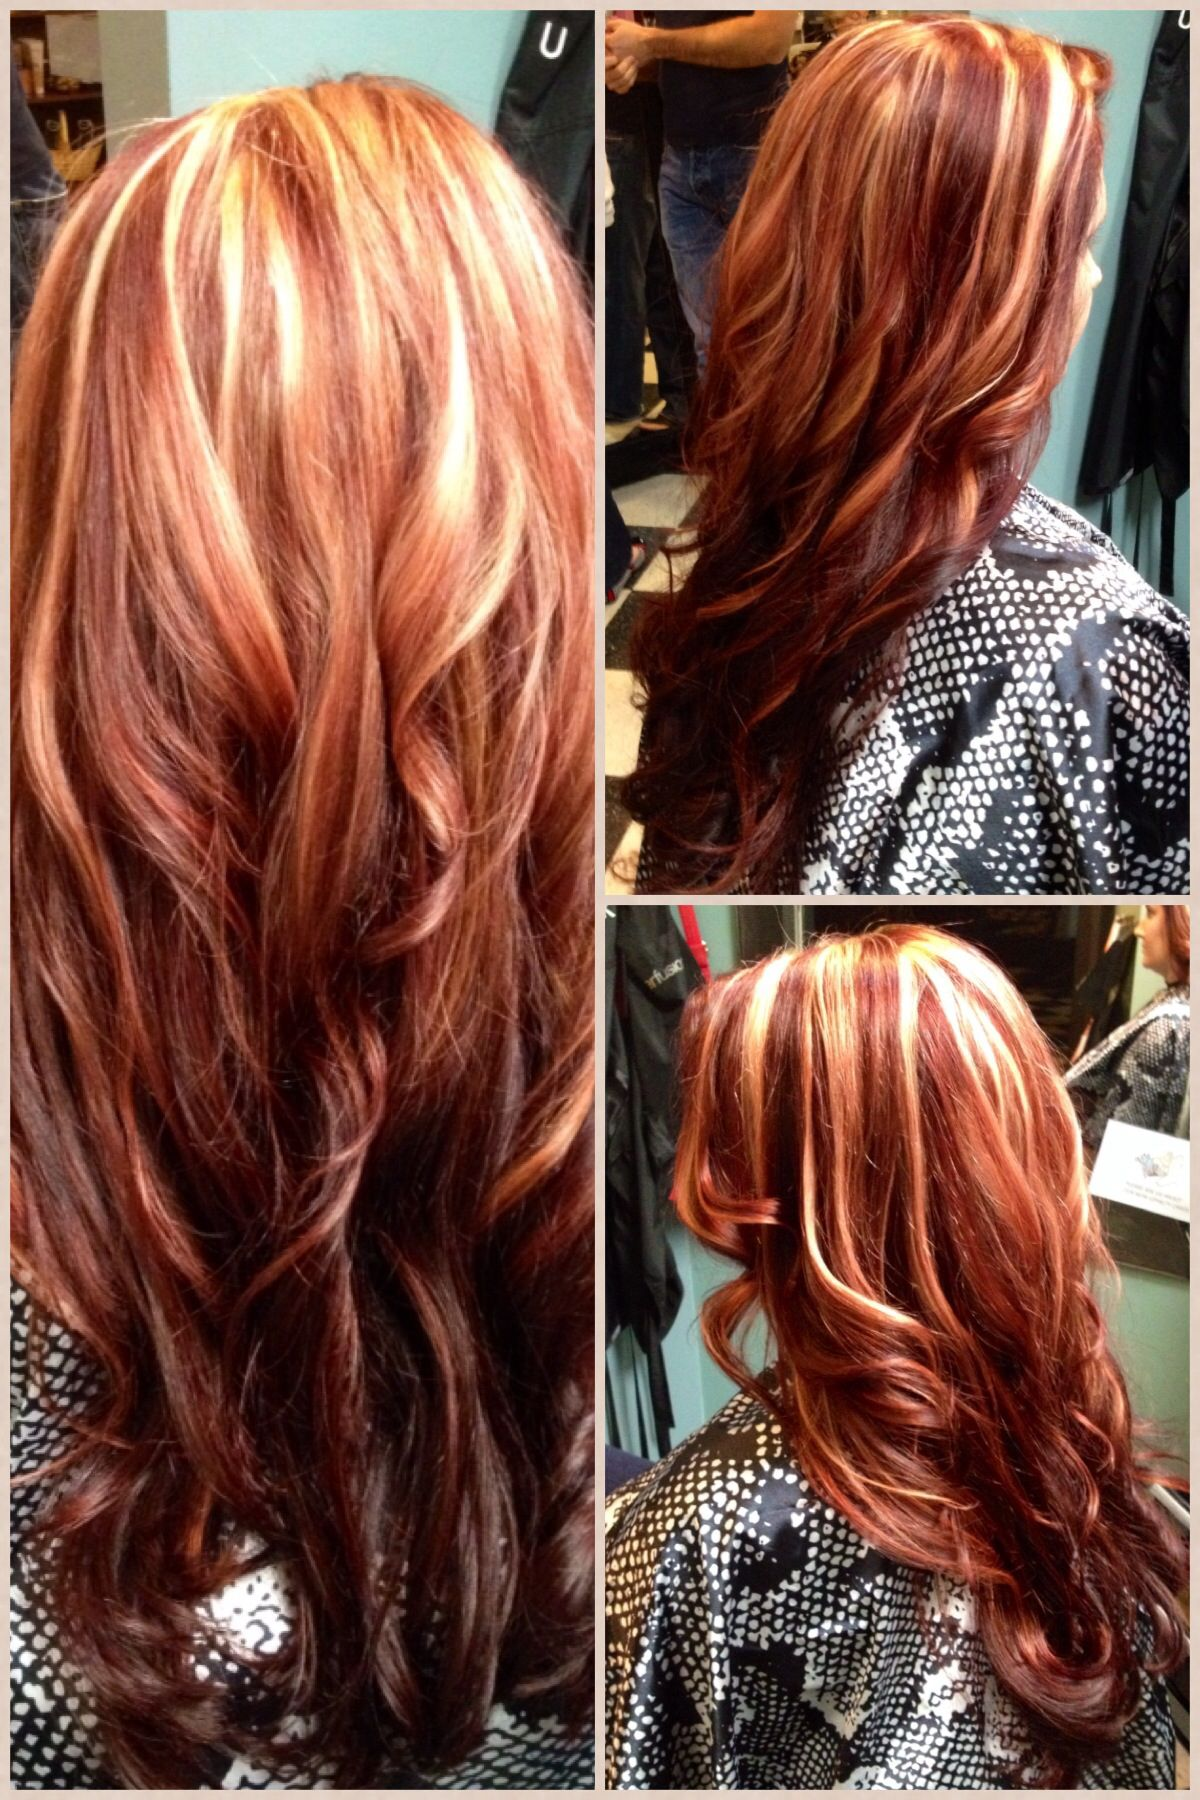 Red Hair Chunky Blonde Hilites Red Blonde Hair Red Hair With Highlights Magenta Hair Colors